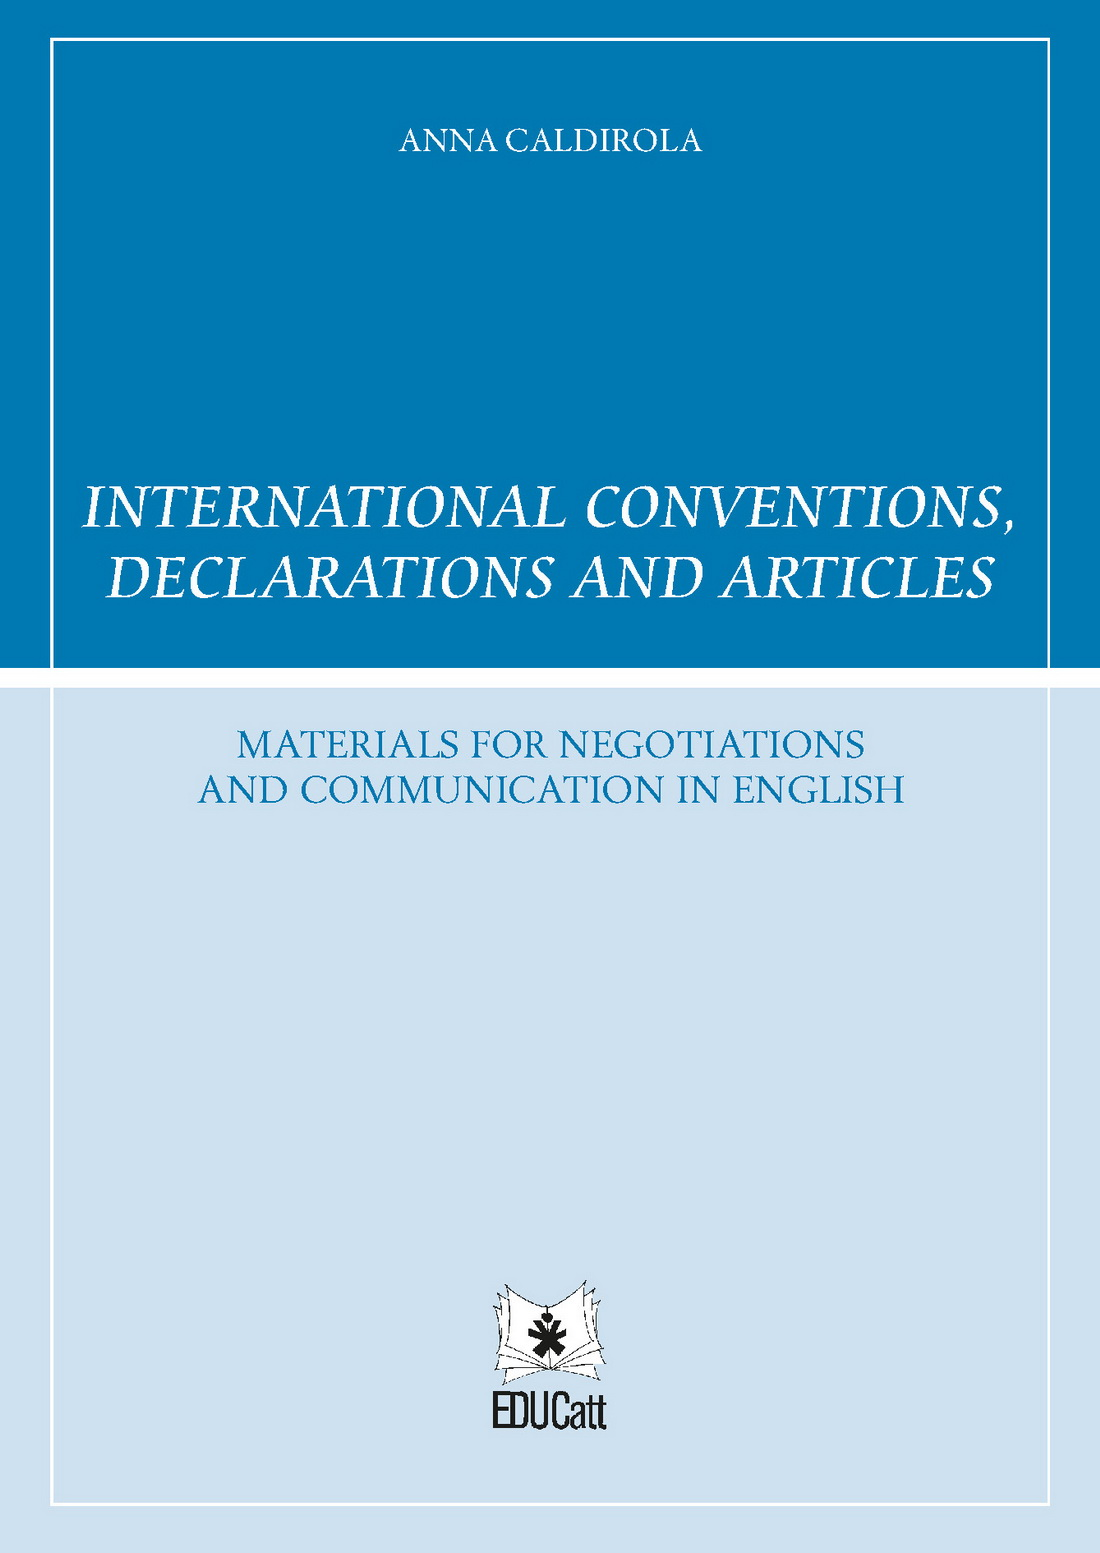 INTERNATIONAL CONVENTIONS, DECLARATIONS AND ARTICLES